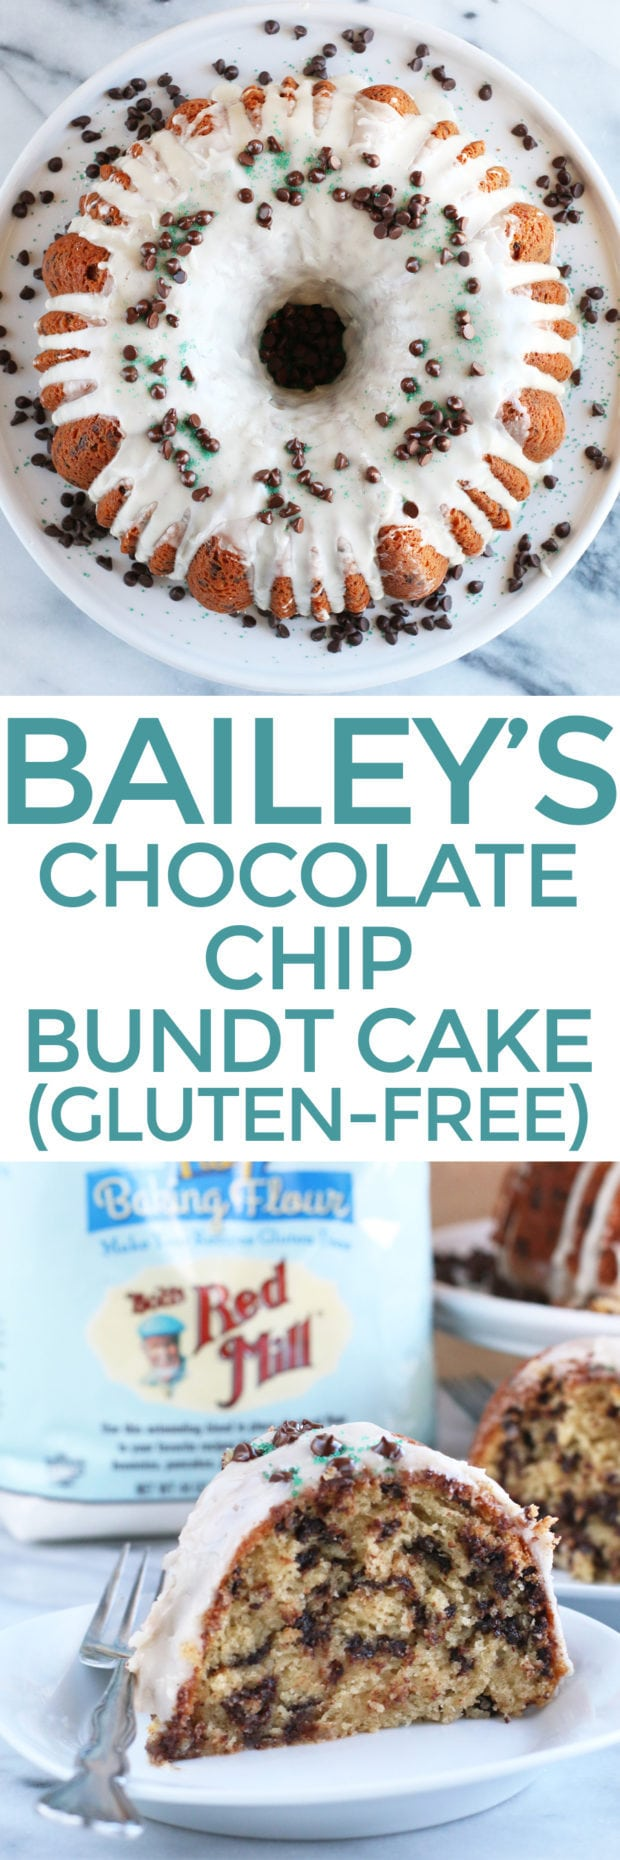 Bailey's Chocolate Chip Bundt Cake pin image